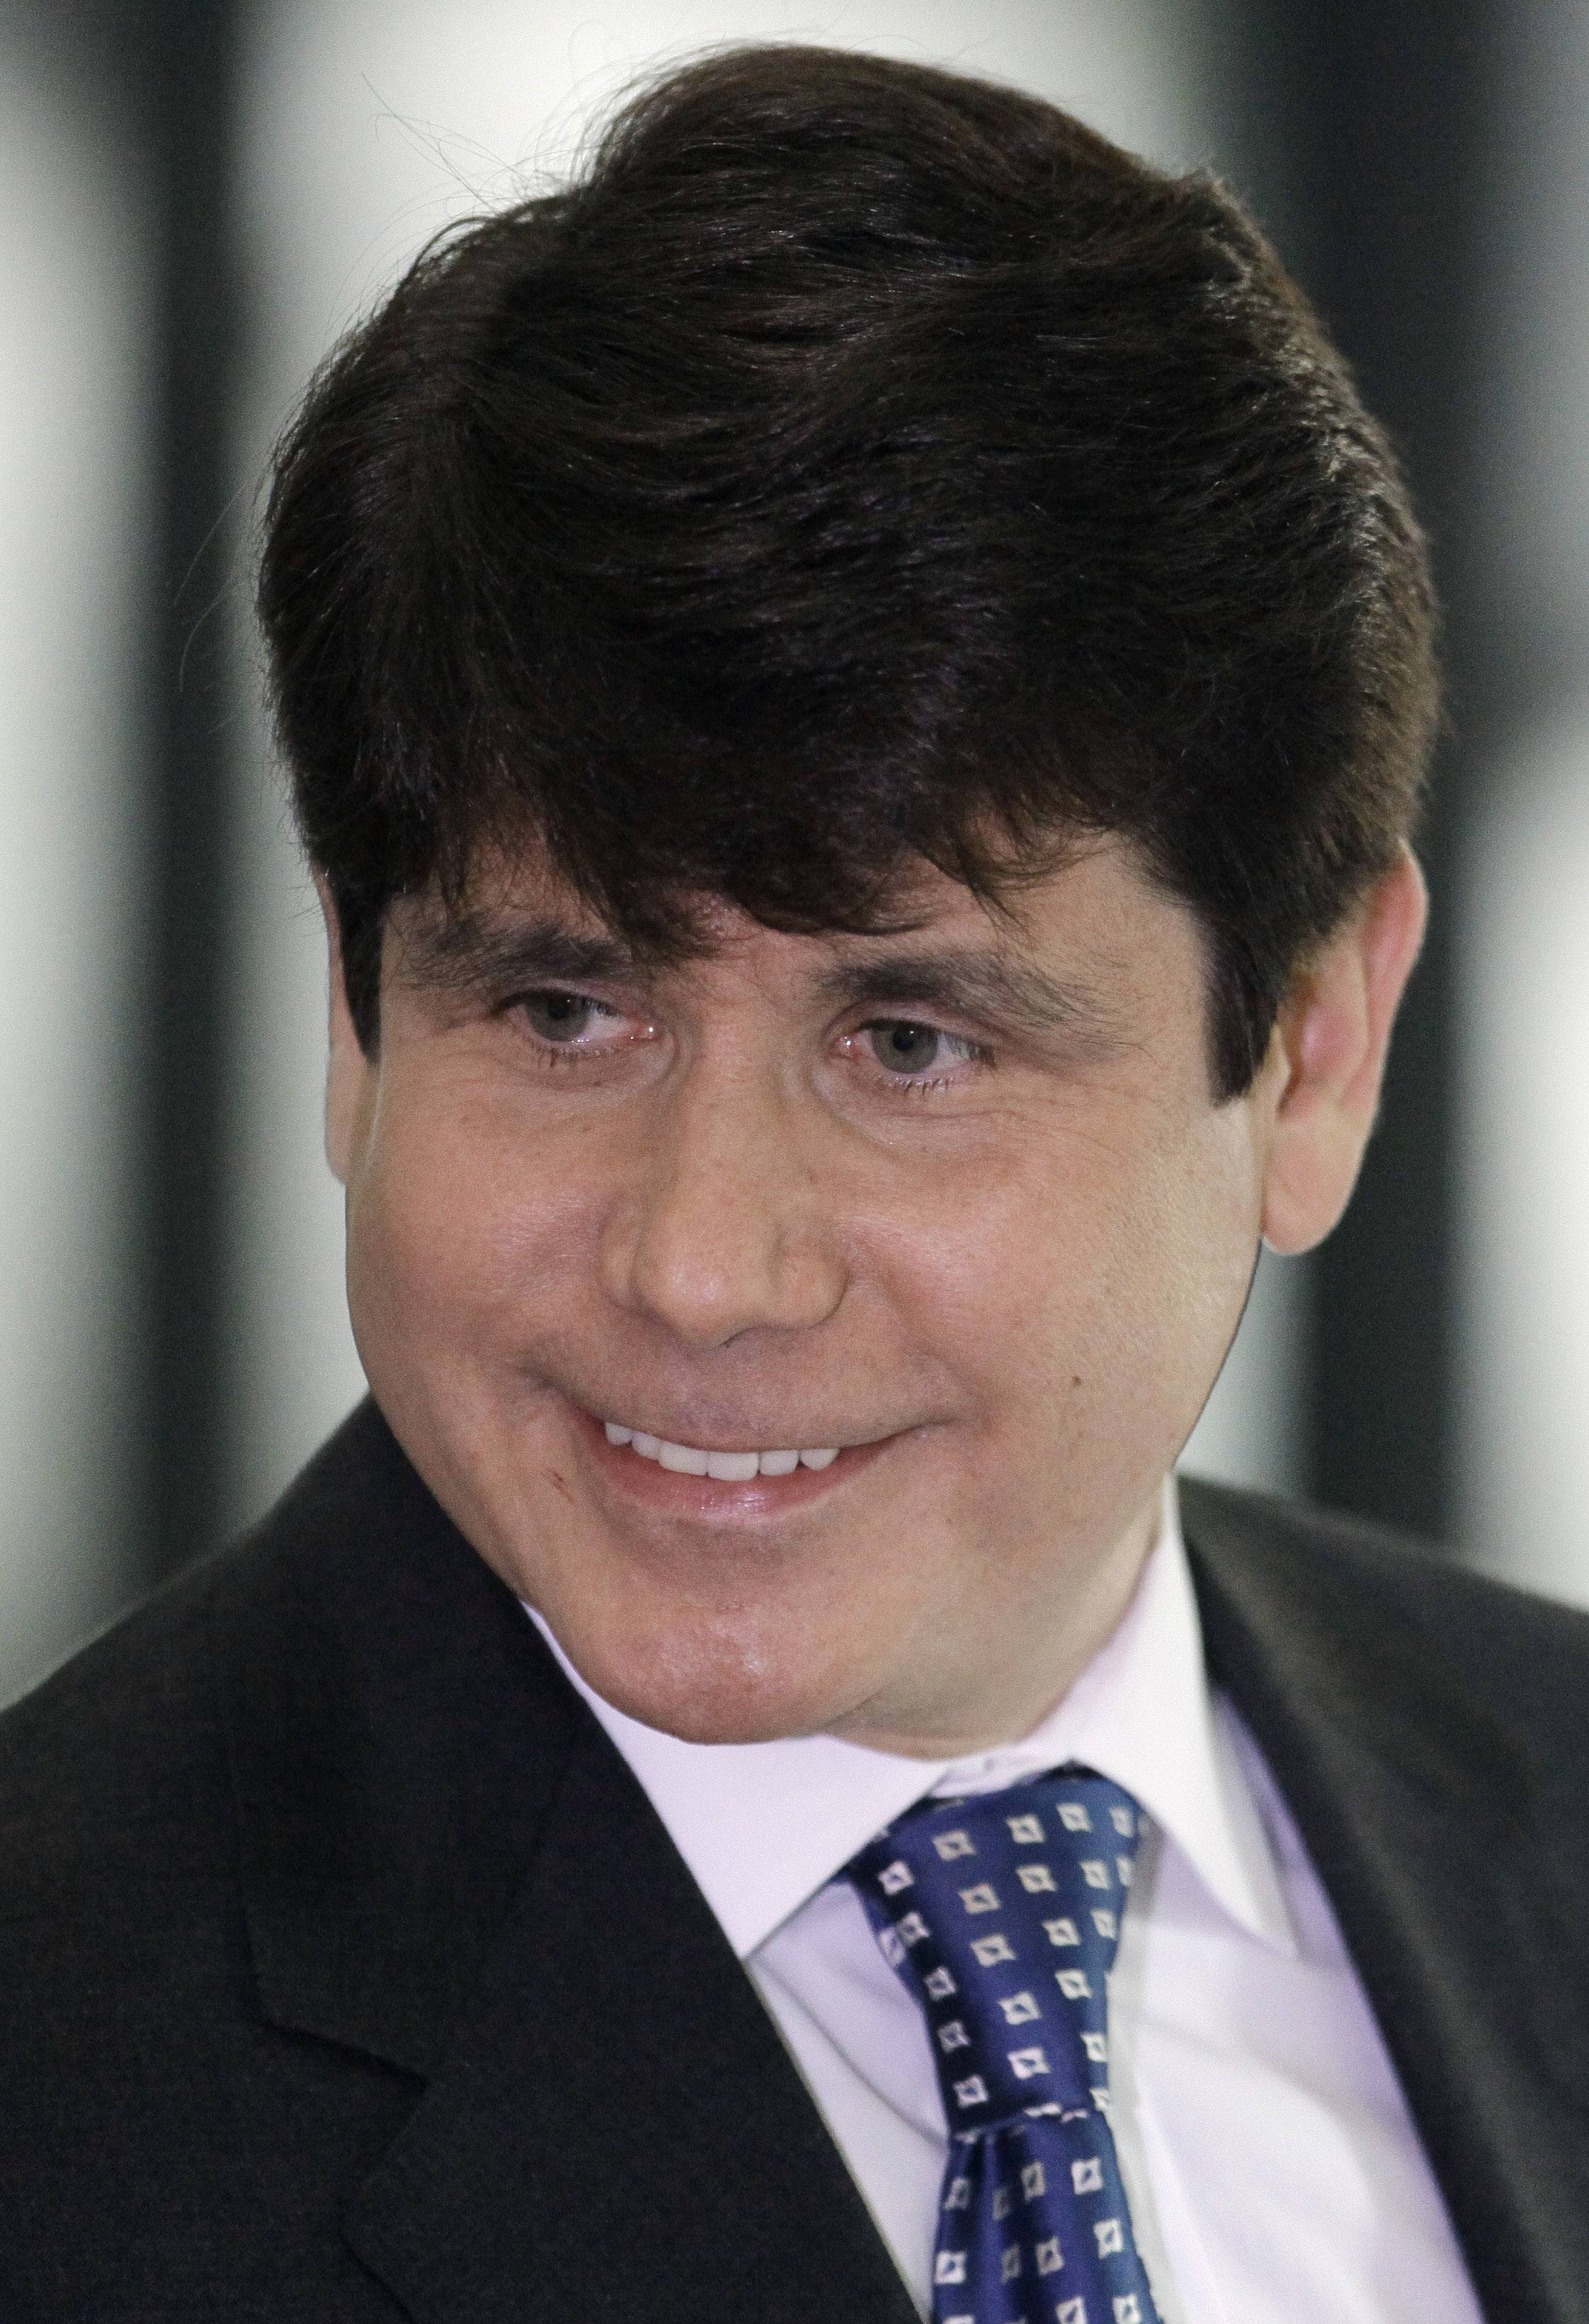 GOP lawmaker: Obama should shorten Blagojevich's sentence